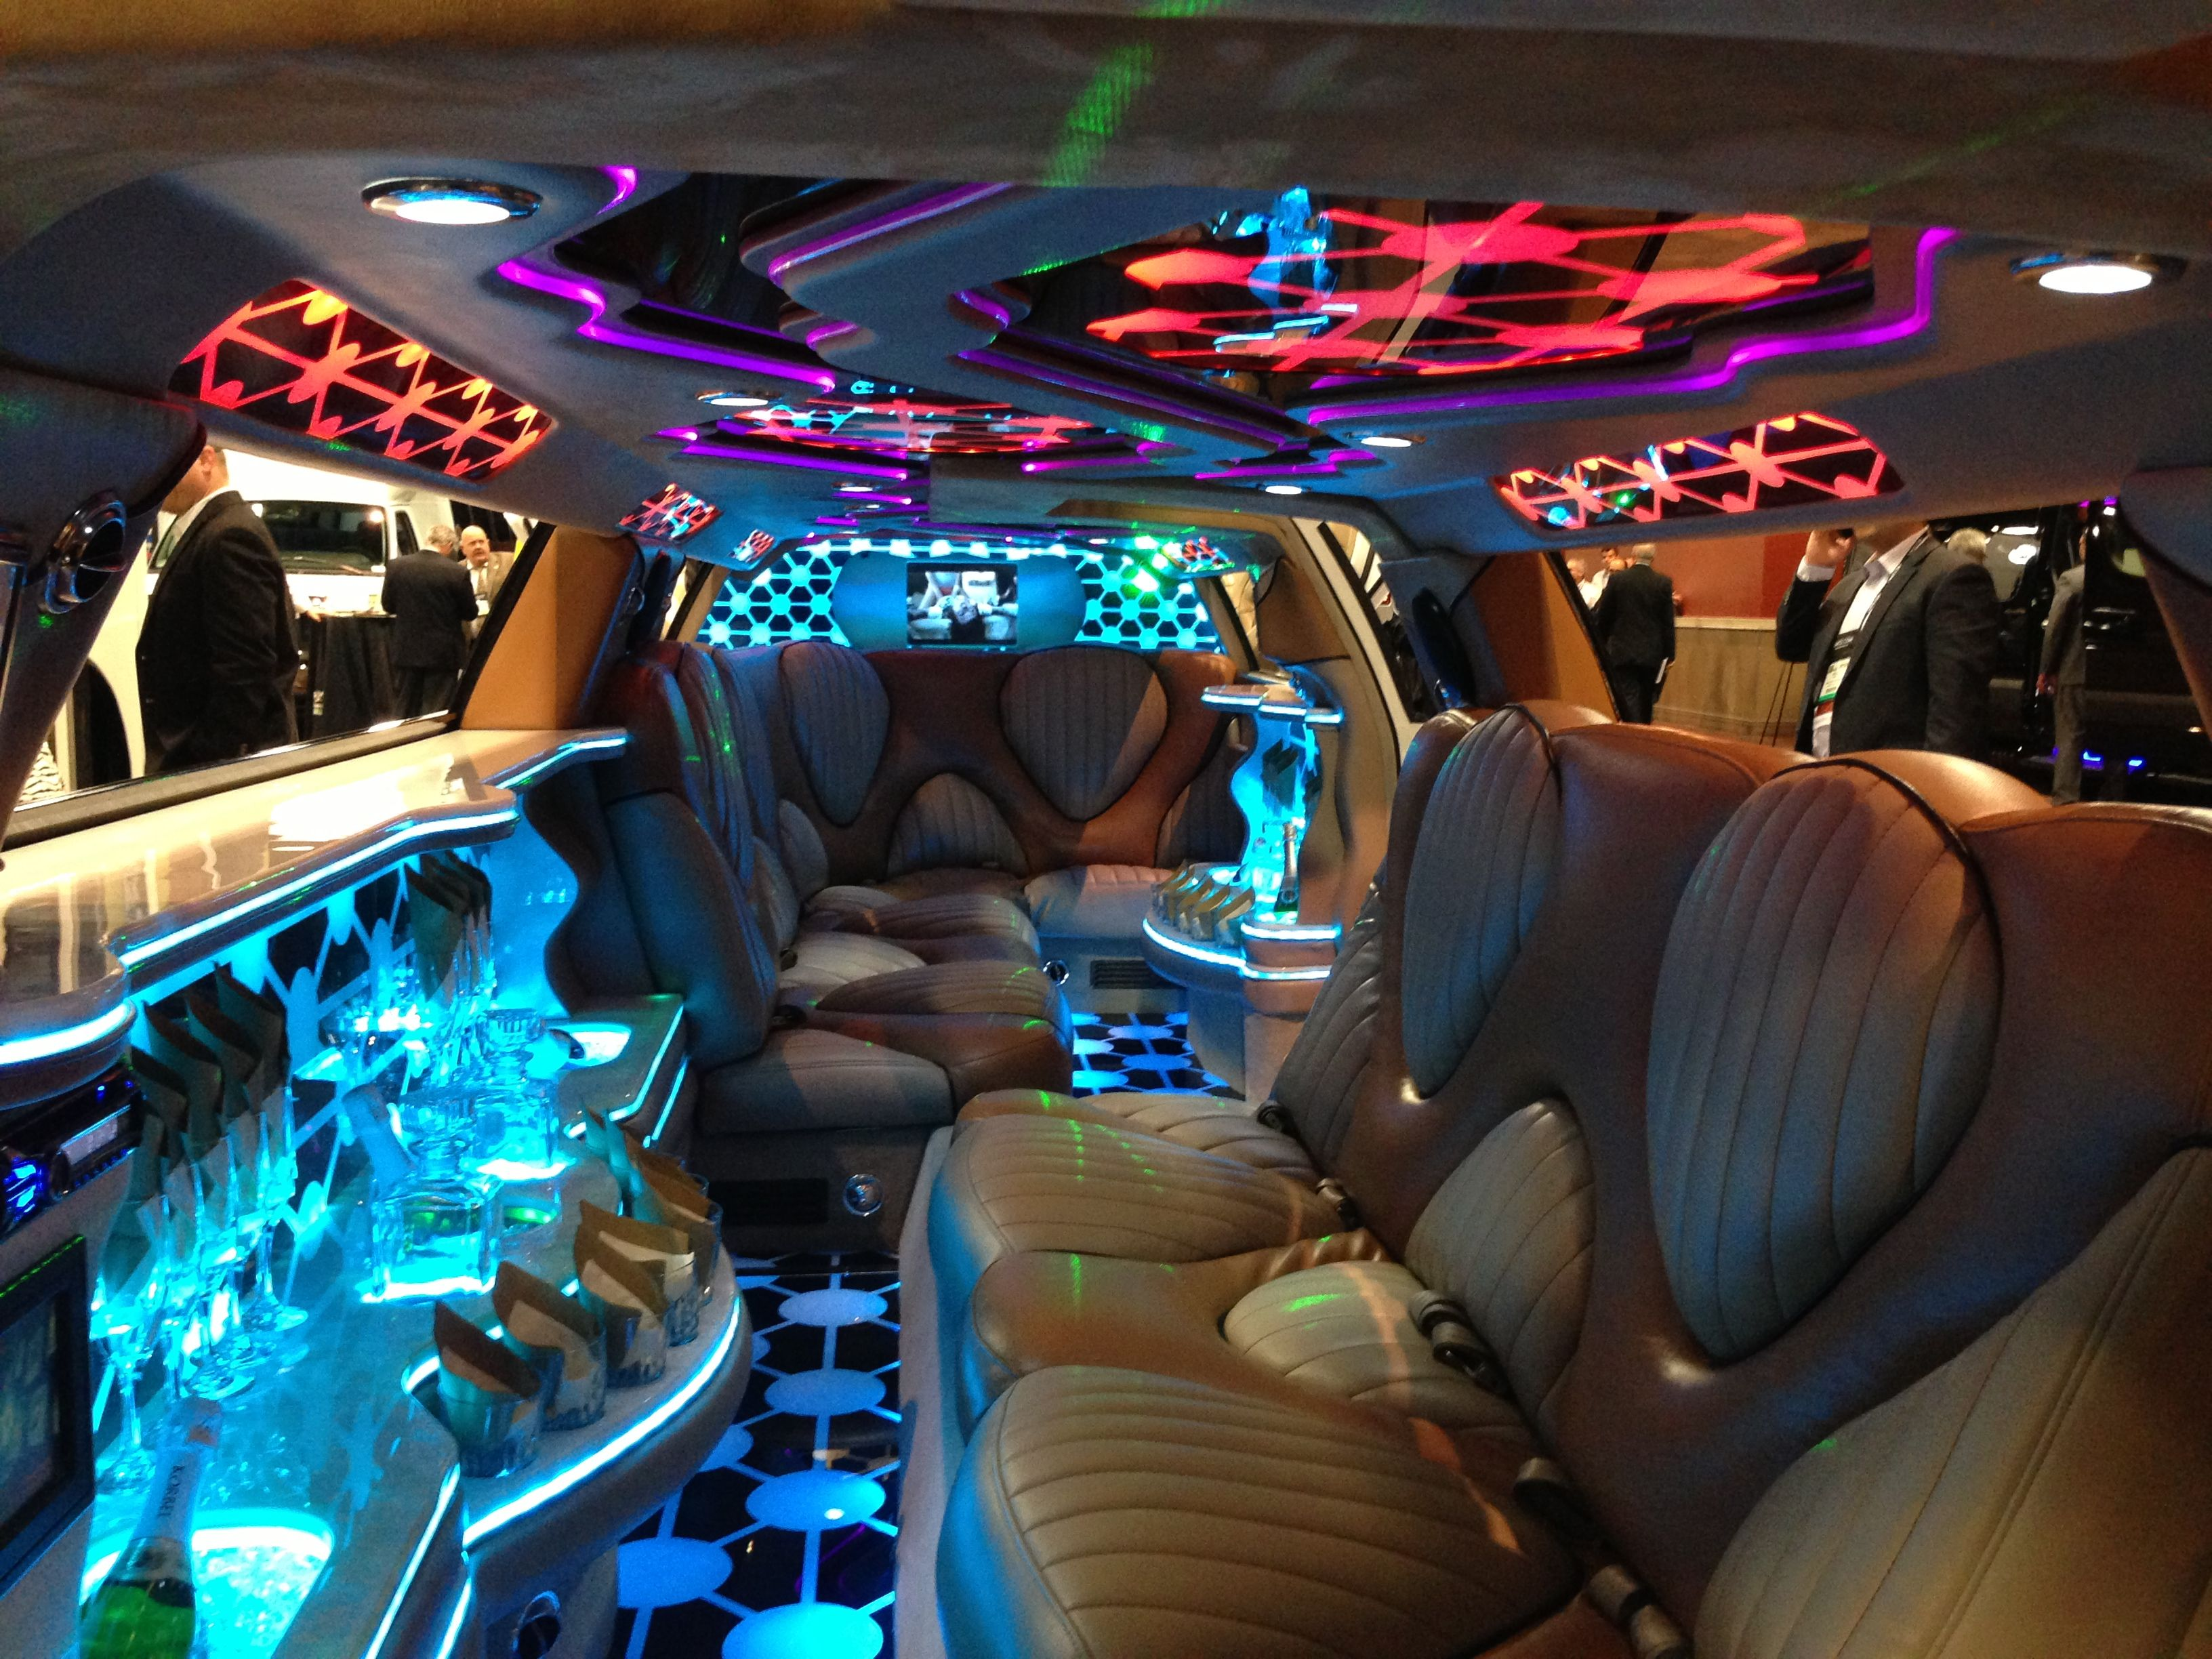 custom chrysler 300 limo interior limousines pinterest chrysler 300 limo and chrysler. Black Bedroom Furniture Sets. Home Design Ideas